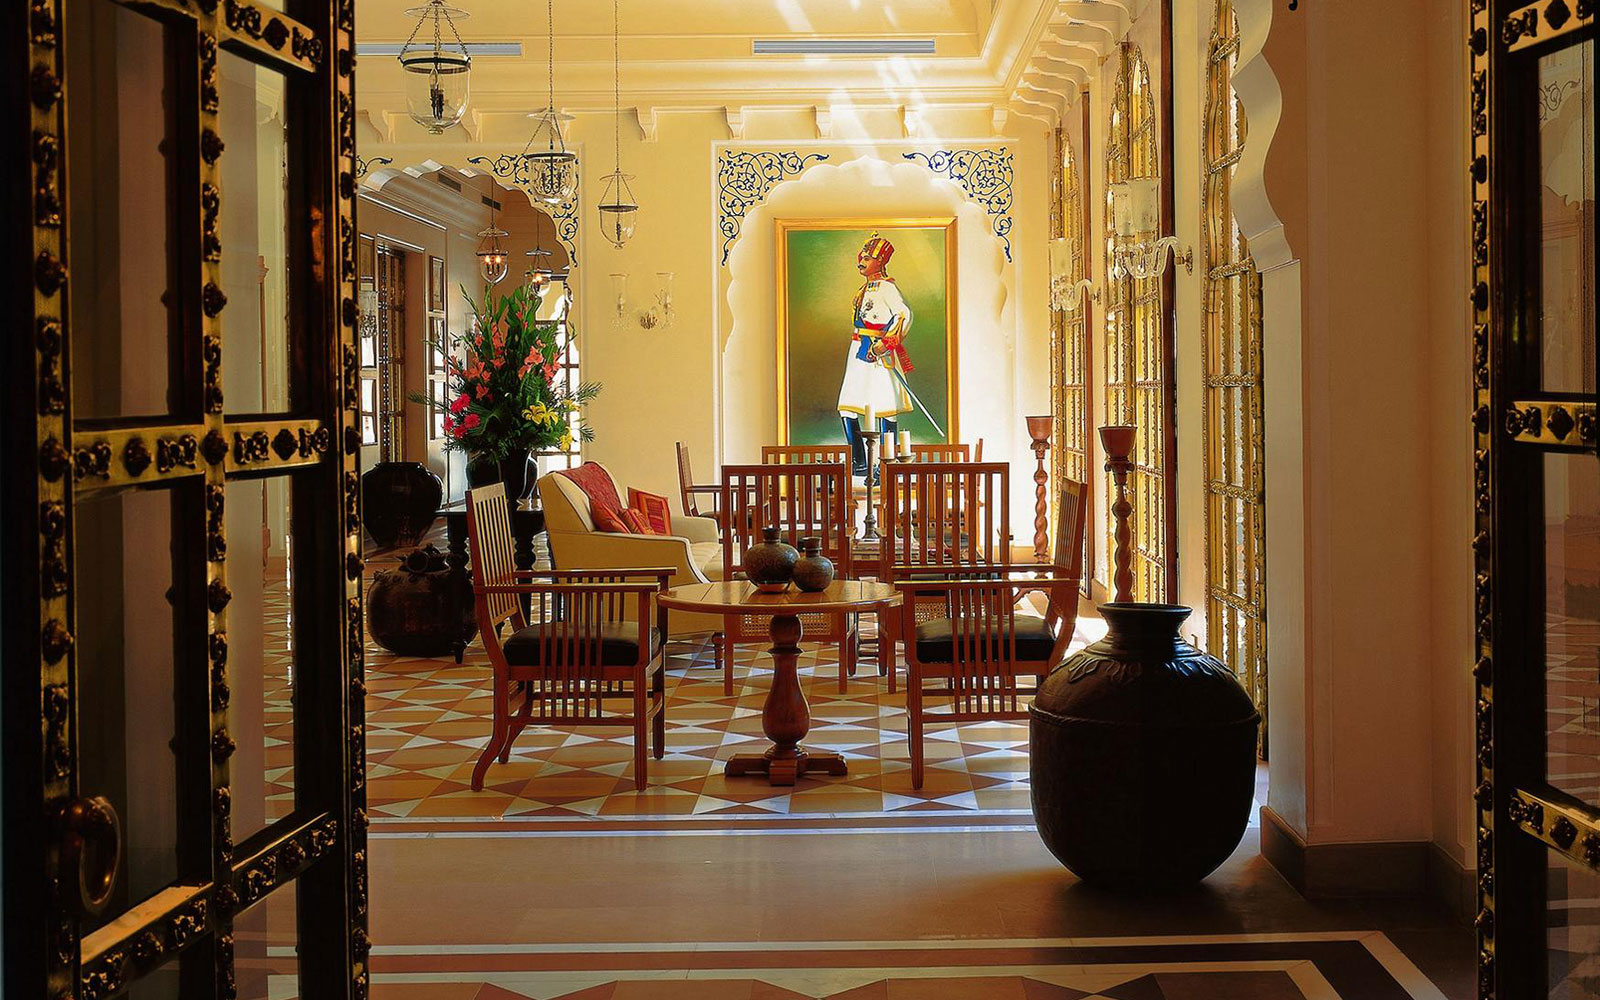 No. 19: The Oberoi Rajvilas, Jaipur, India